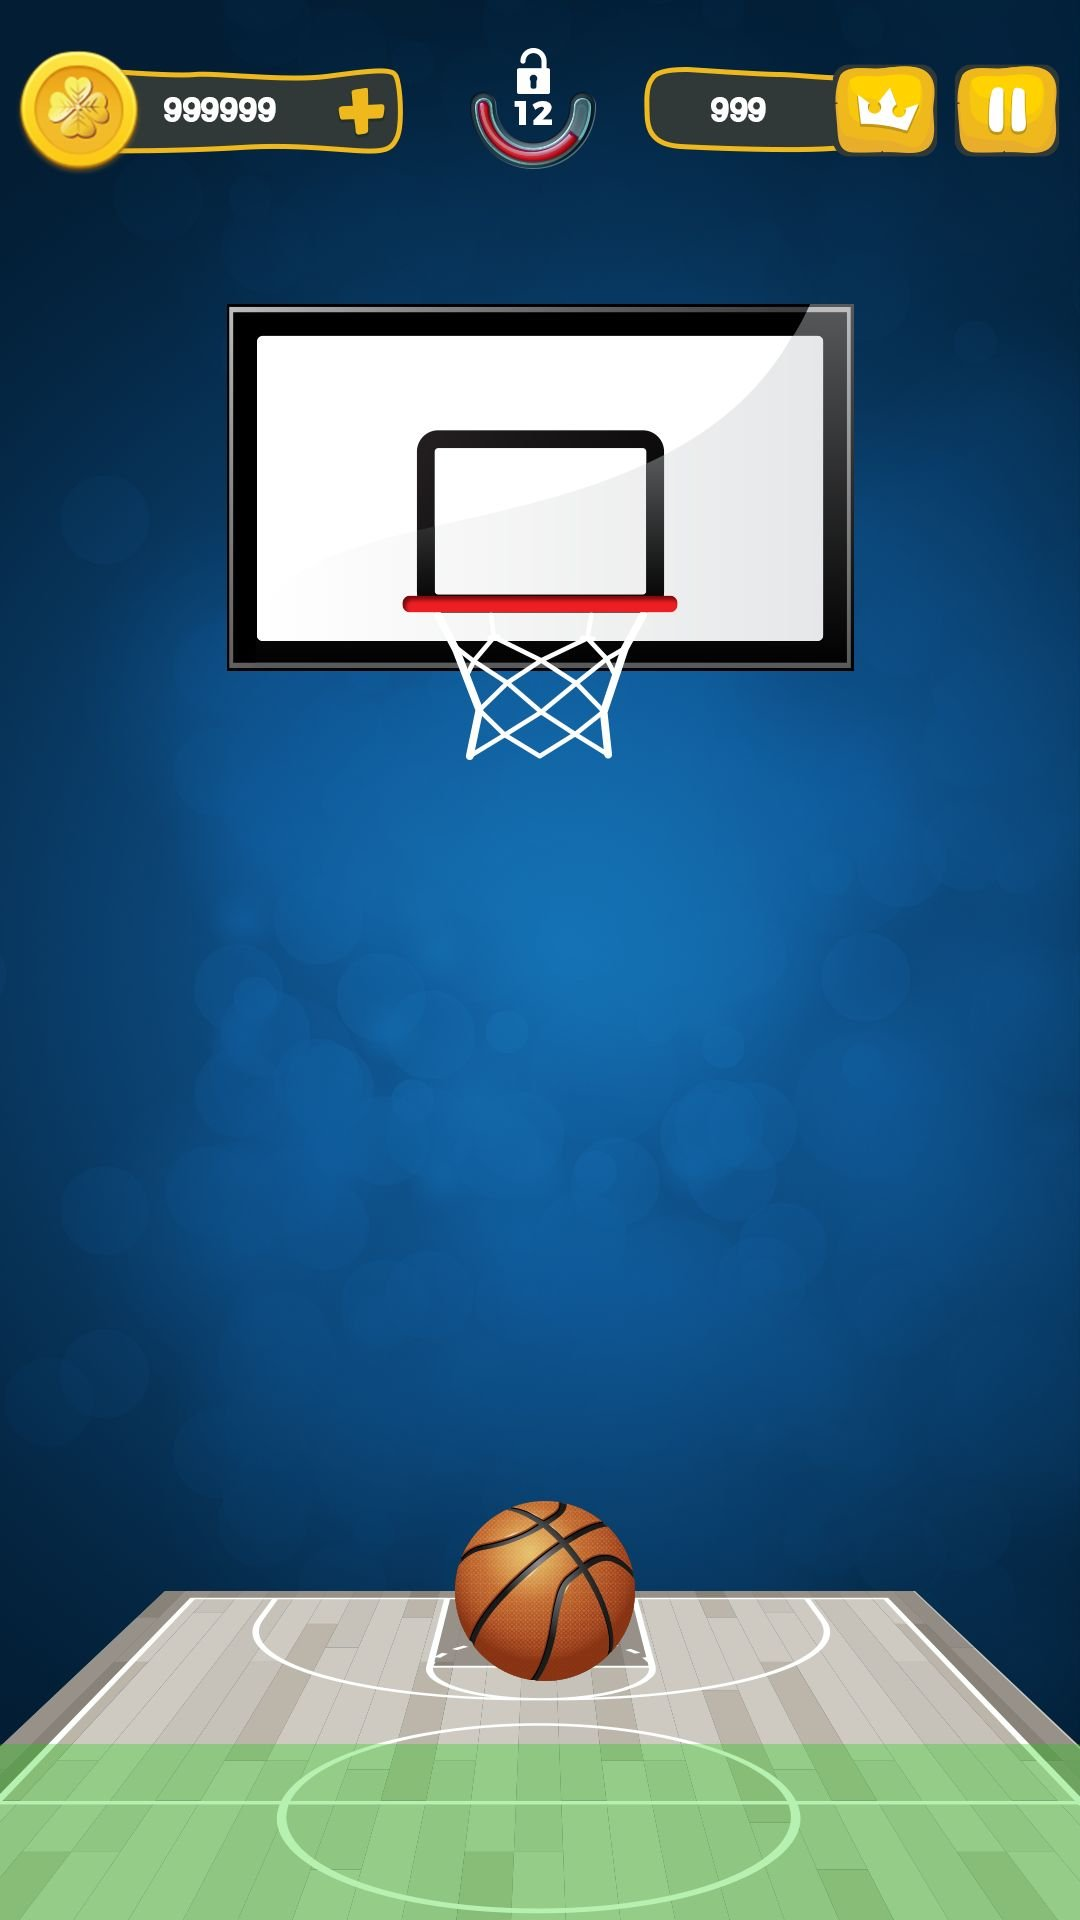 Basket Ball Game Skin - Pack 2 Screenshot 4